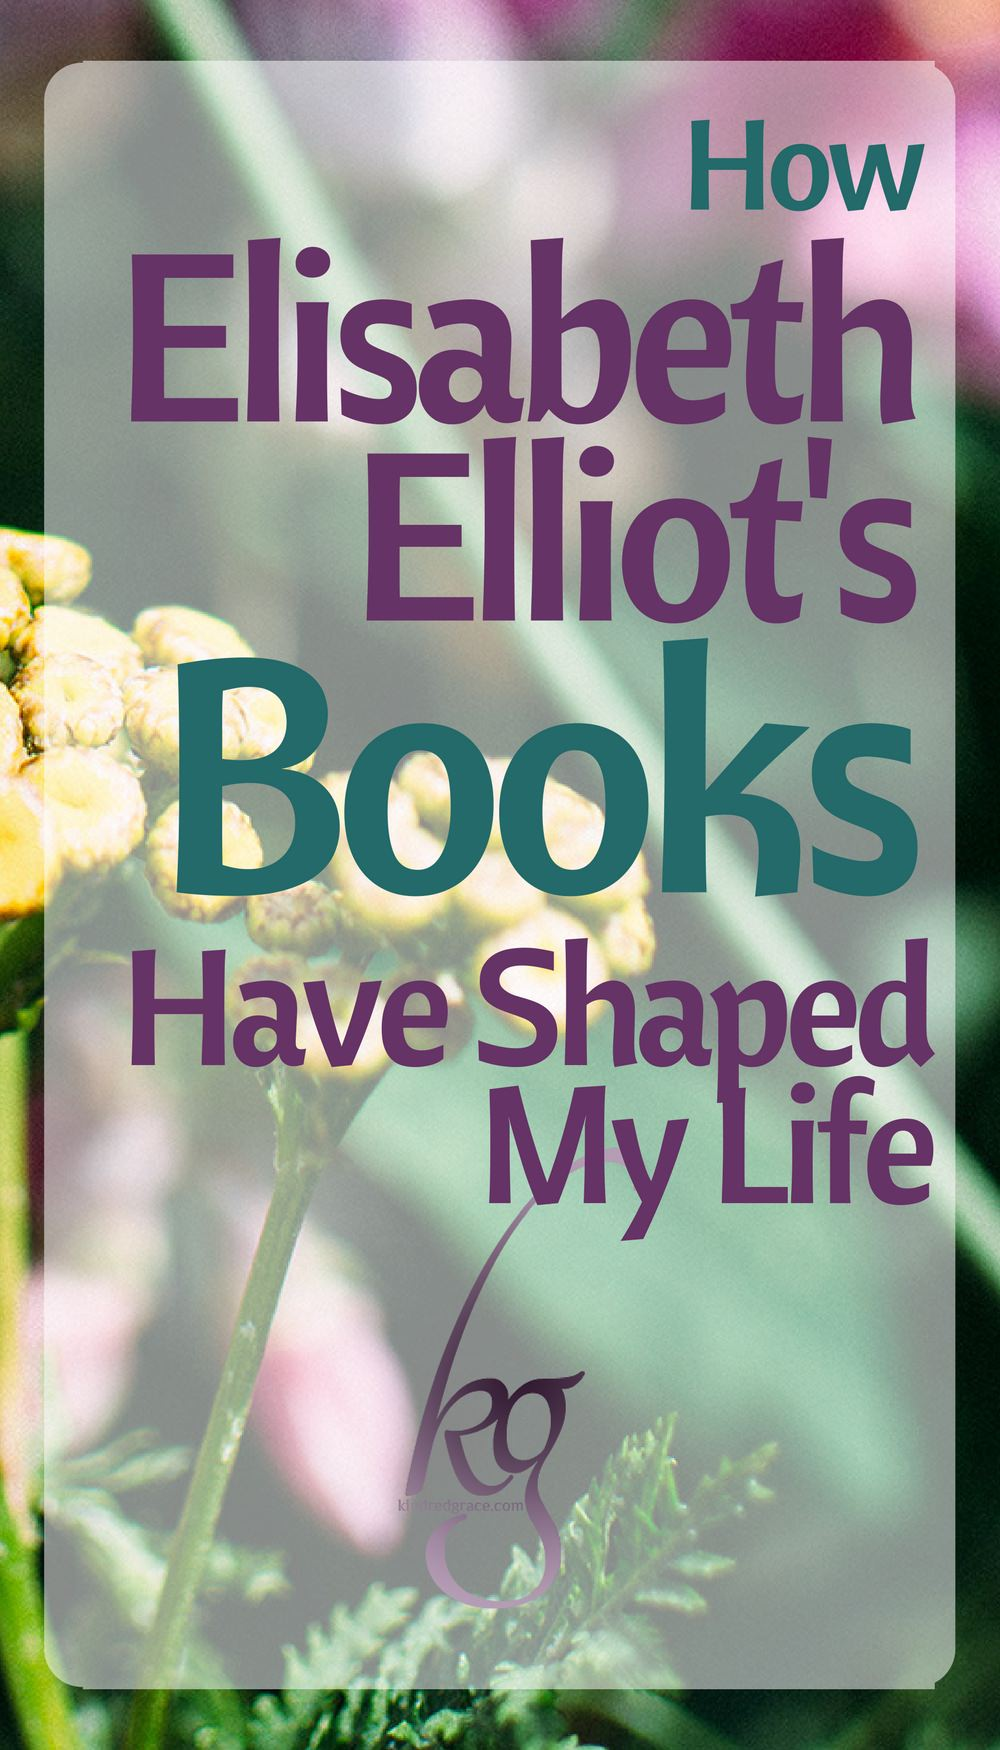 Elliot never avoided the harsh word or sugarcoated the truth. She took the Bible and laid it out the way she saw it and, as you waited for an apology, she gave you a blessing. Her books were so different than the patronizing church curriculum I had been exposed to. It was convicting, but it made so much sense to me, and that was worth the pain of conviction. Sense in a senseless world, wisdom for fools, truth in a time of false teachers: I discovered these things in her writing and uncovered them as one would gold nuggets from a rain gutter. via @KindredGrace